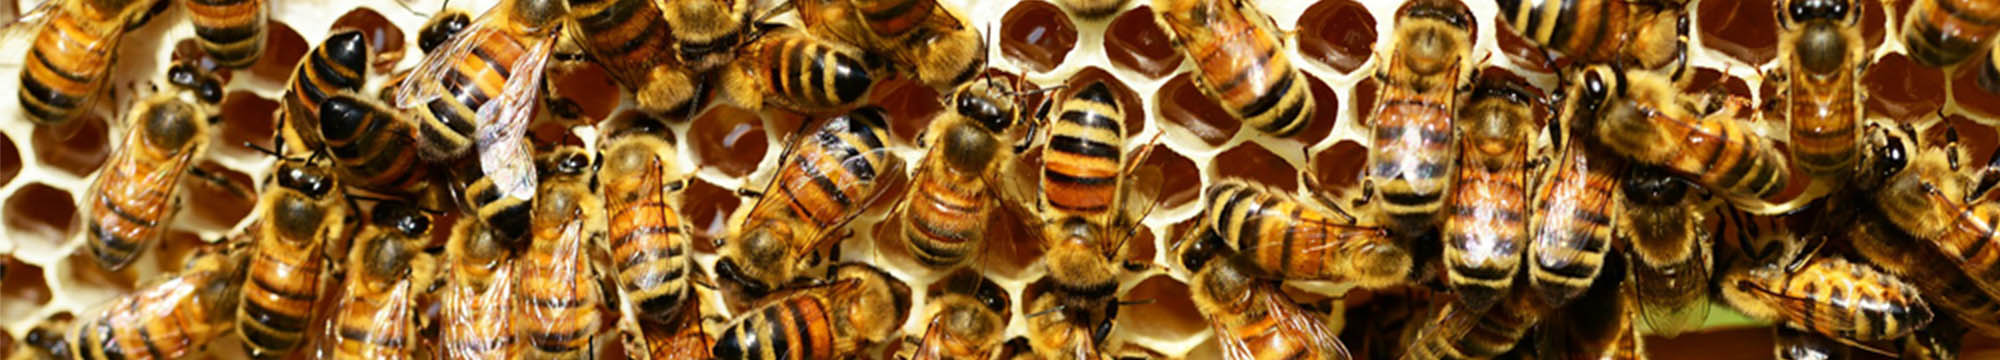 Sarum Bee Supplies Wiltshire worker bees